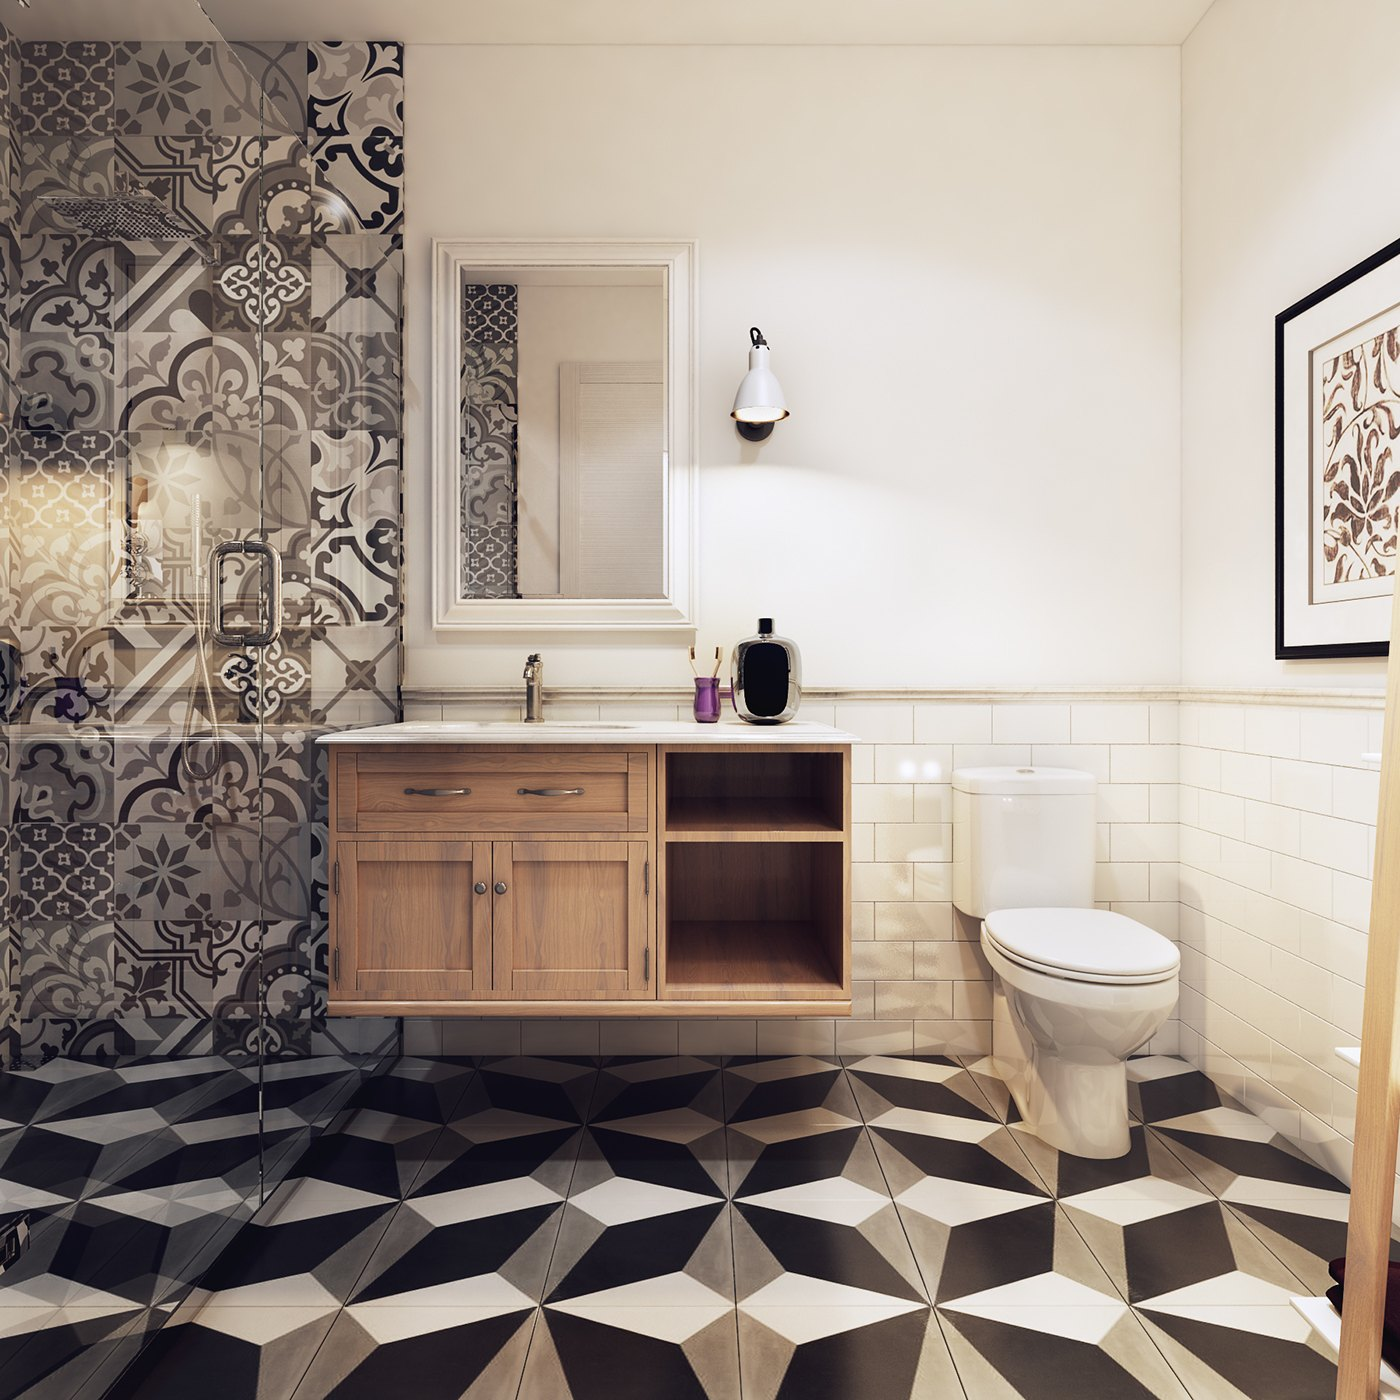 Awesome Geometric Bathroom - 10 stunning apartments that show off the beauty of nordic interior design